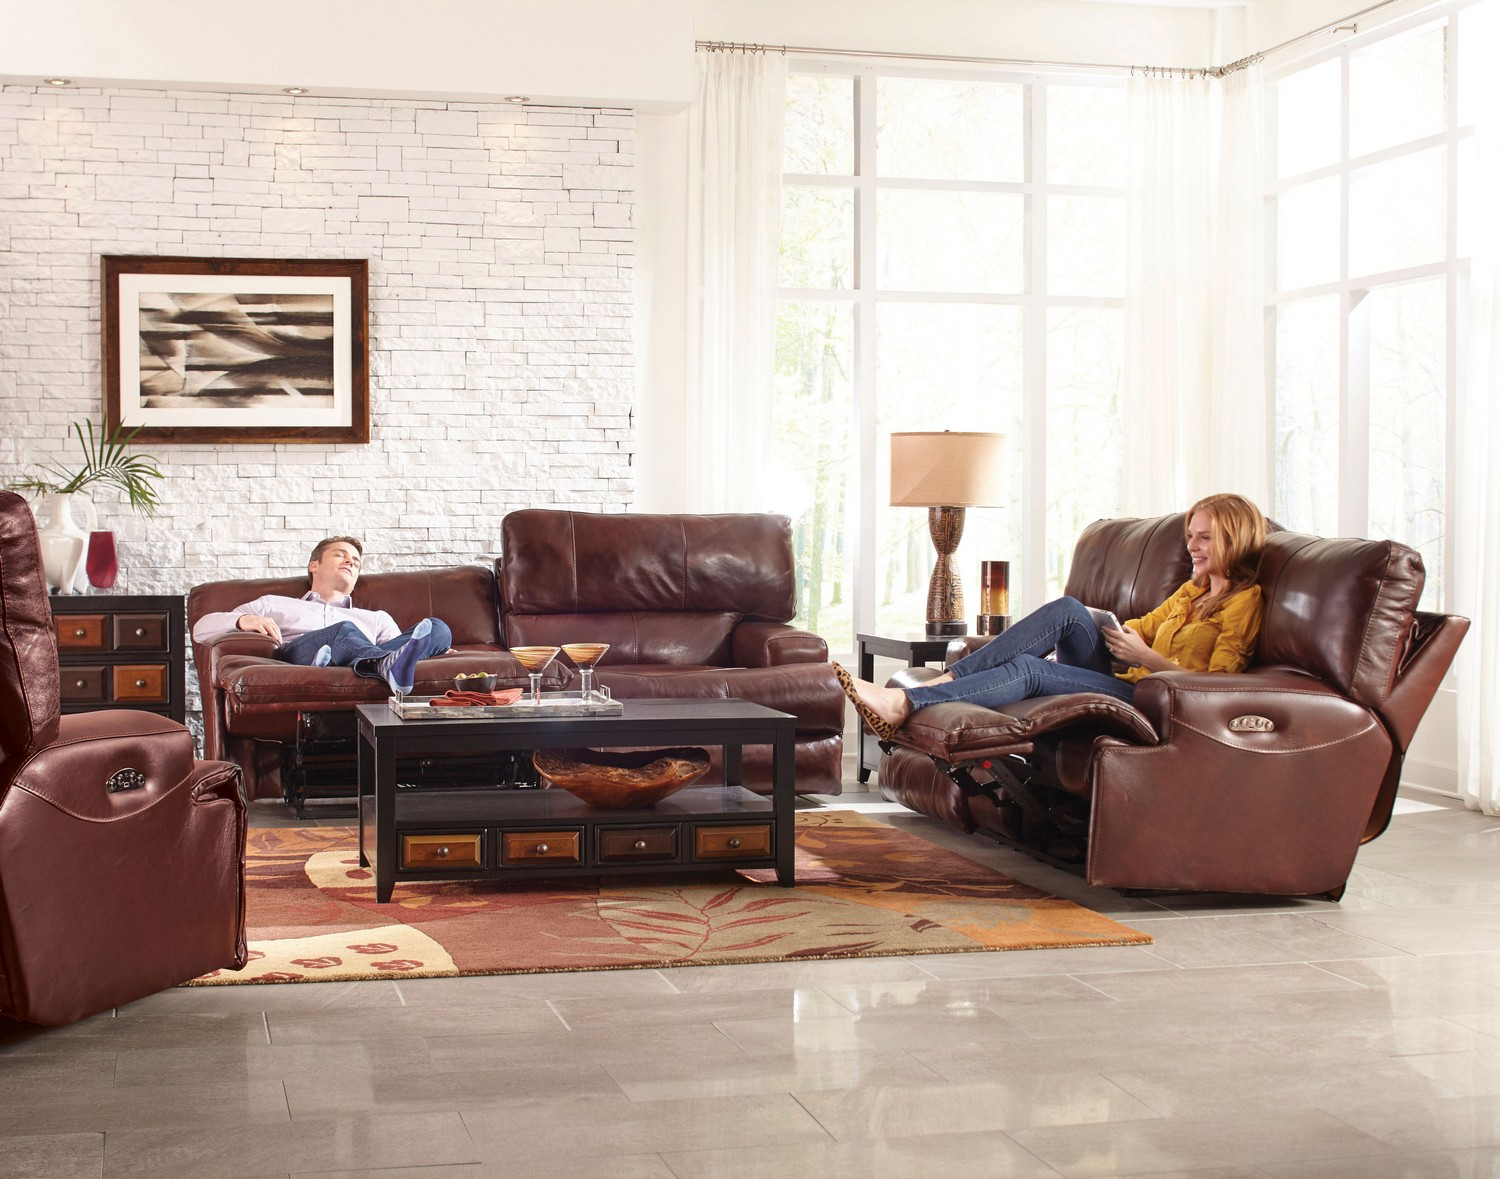 CatNapper Wembley Top Grain Italian Leather Leather Lay Flat Reclining Sofa  Set   Walnut